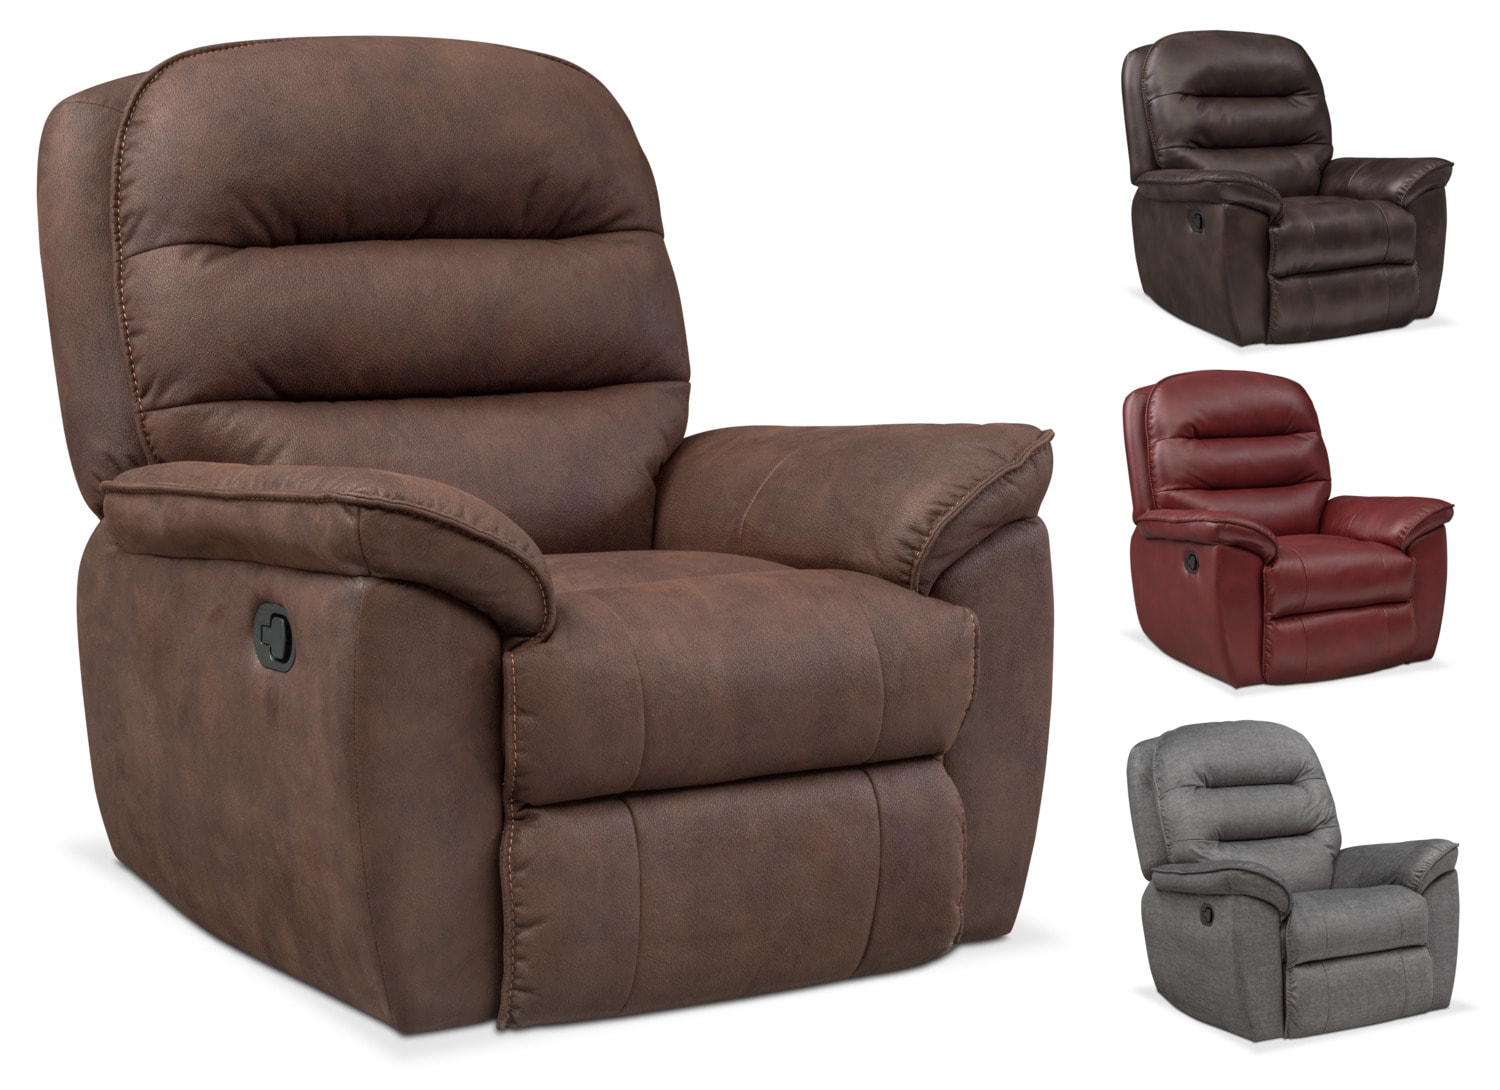 The Regis Glider Recliner Collection